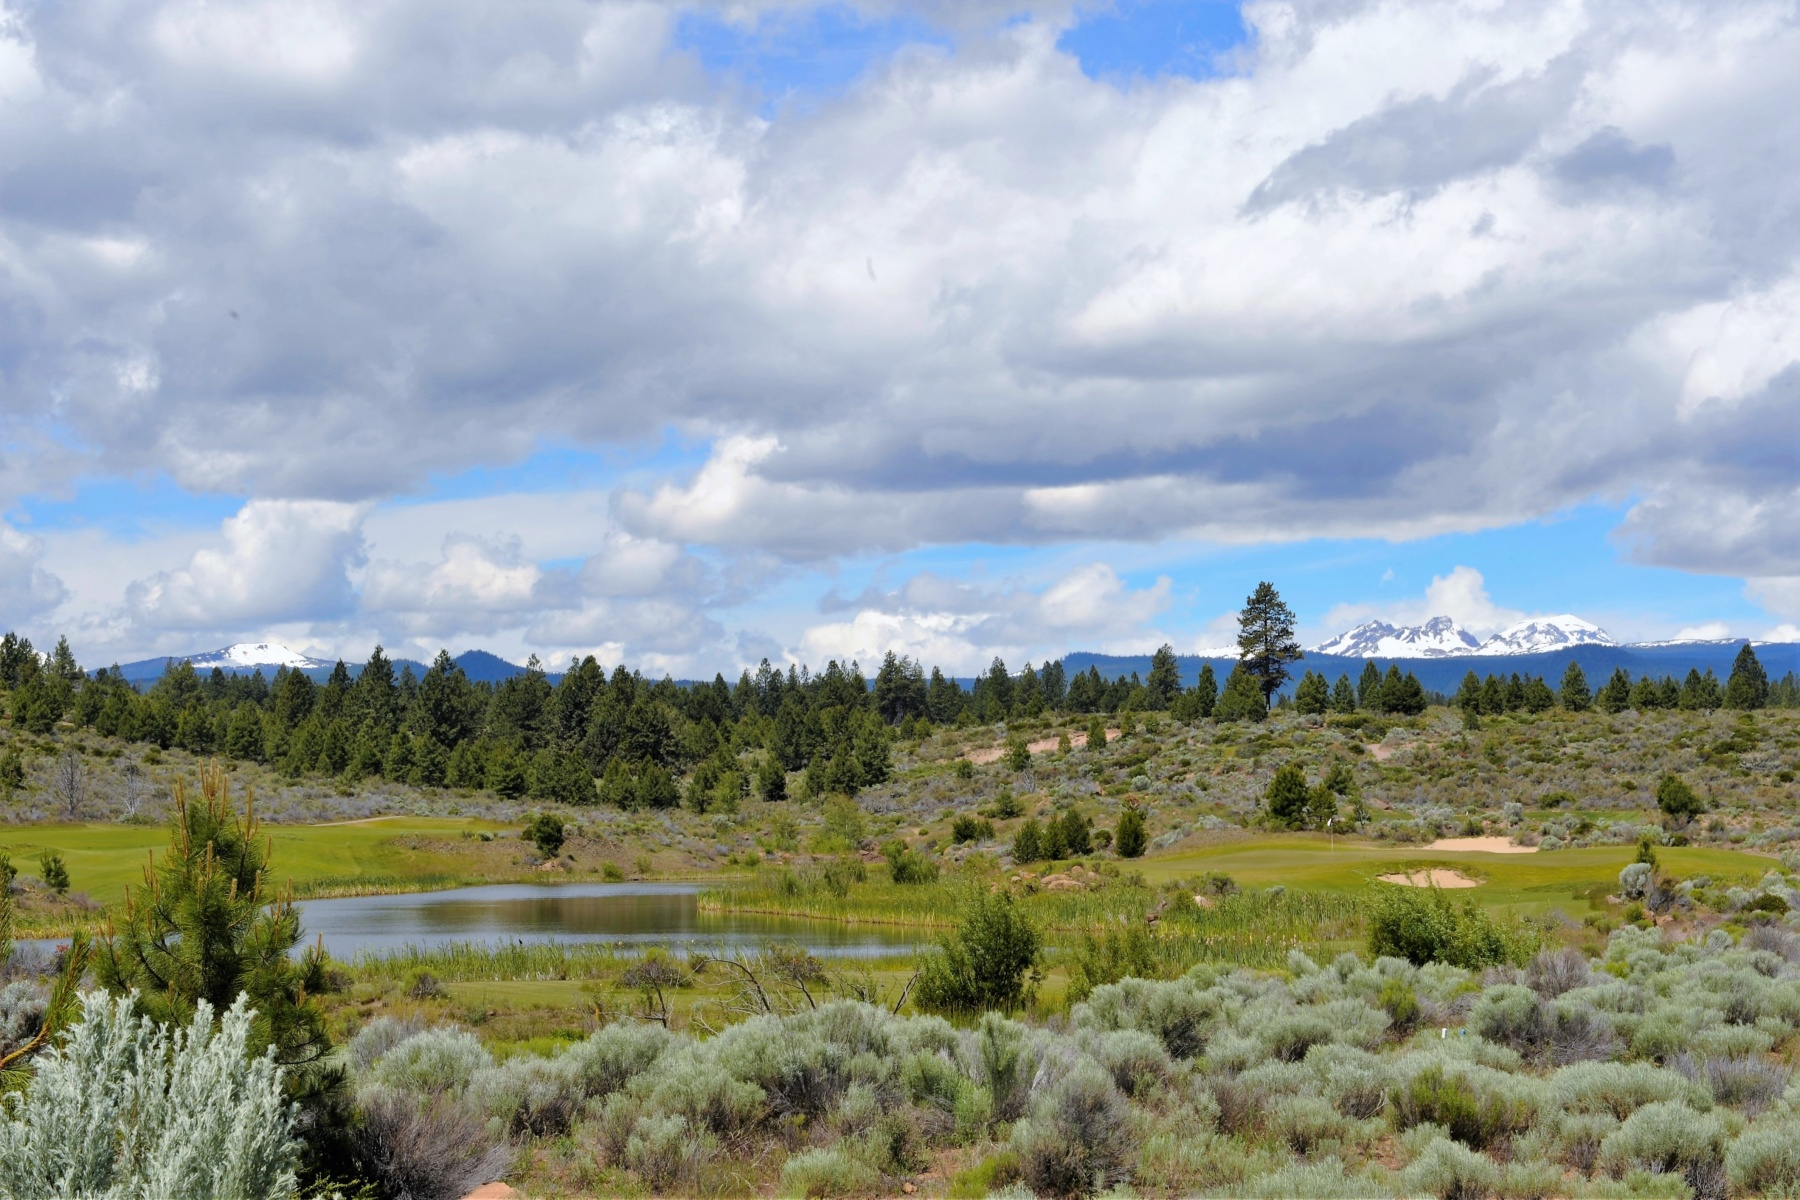 Land for Sale at 61538 Hardin Martin Lot 204, BEND 61538 Hardin Martin Ct Lot 204 Bend, Oregon, 97702 United States